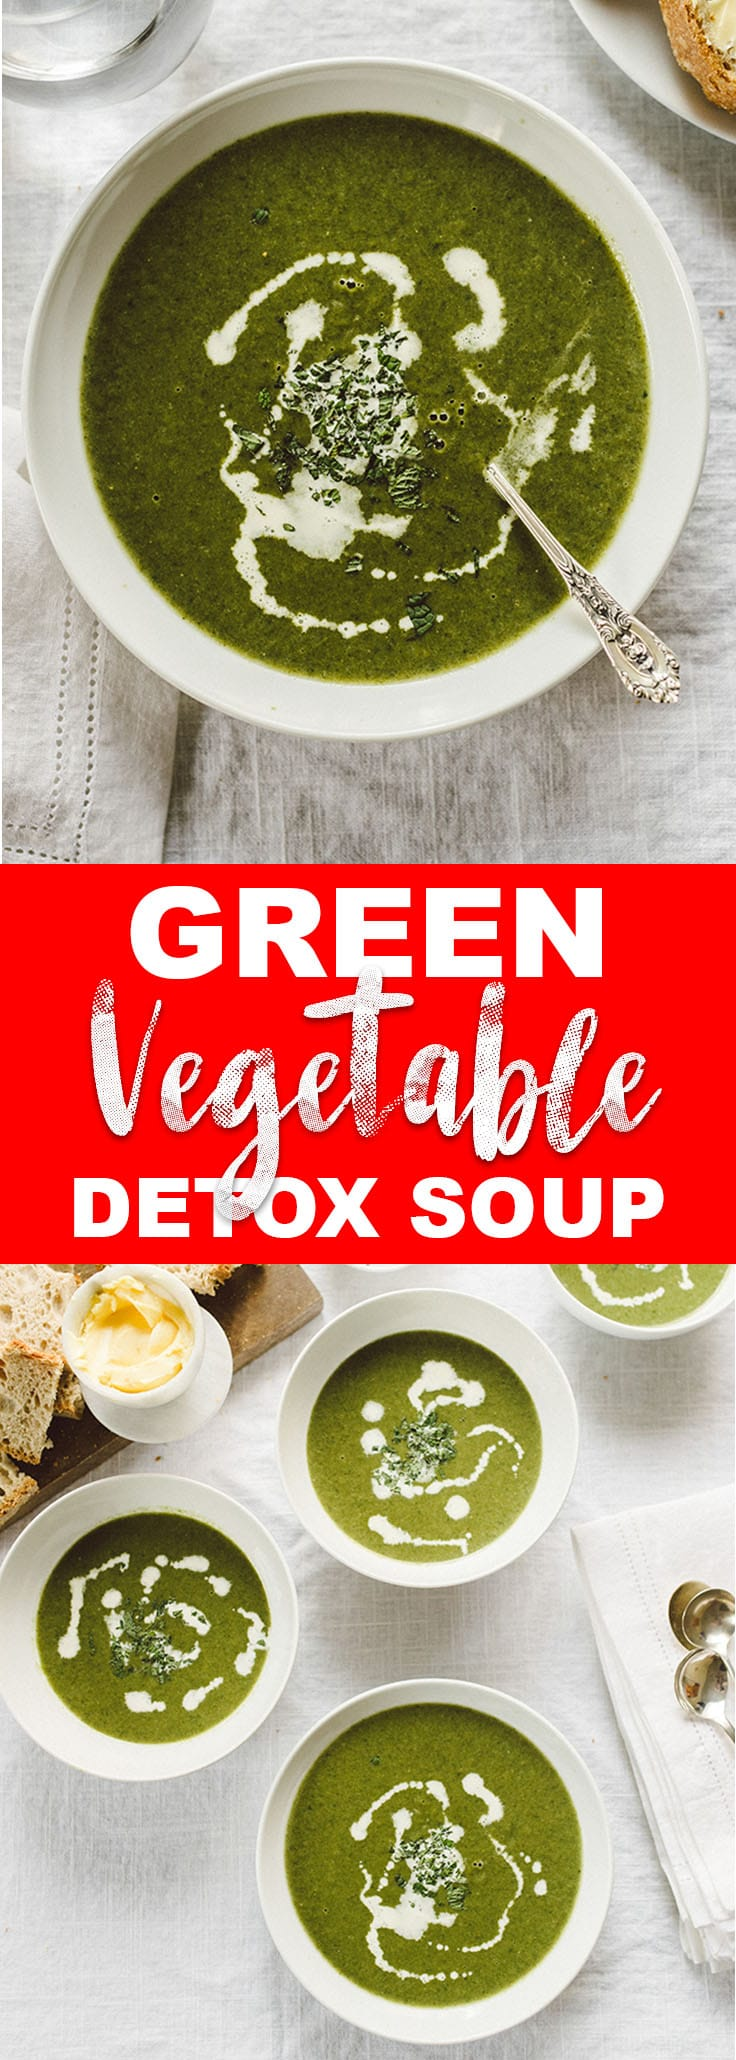 This green vegetable soup is refreshing, hearty, and packed with vitamins and minerals. It's a healthy, customizable spring detox soup that's naturally paleo and whole30. #greensoup #paleo #whole30 #realfood #wholefoods #bonebroth